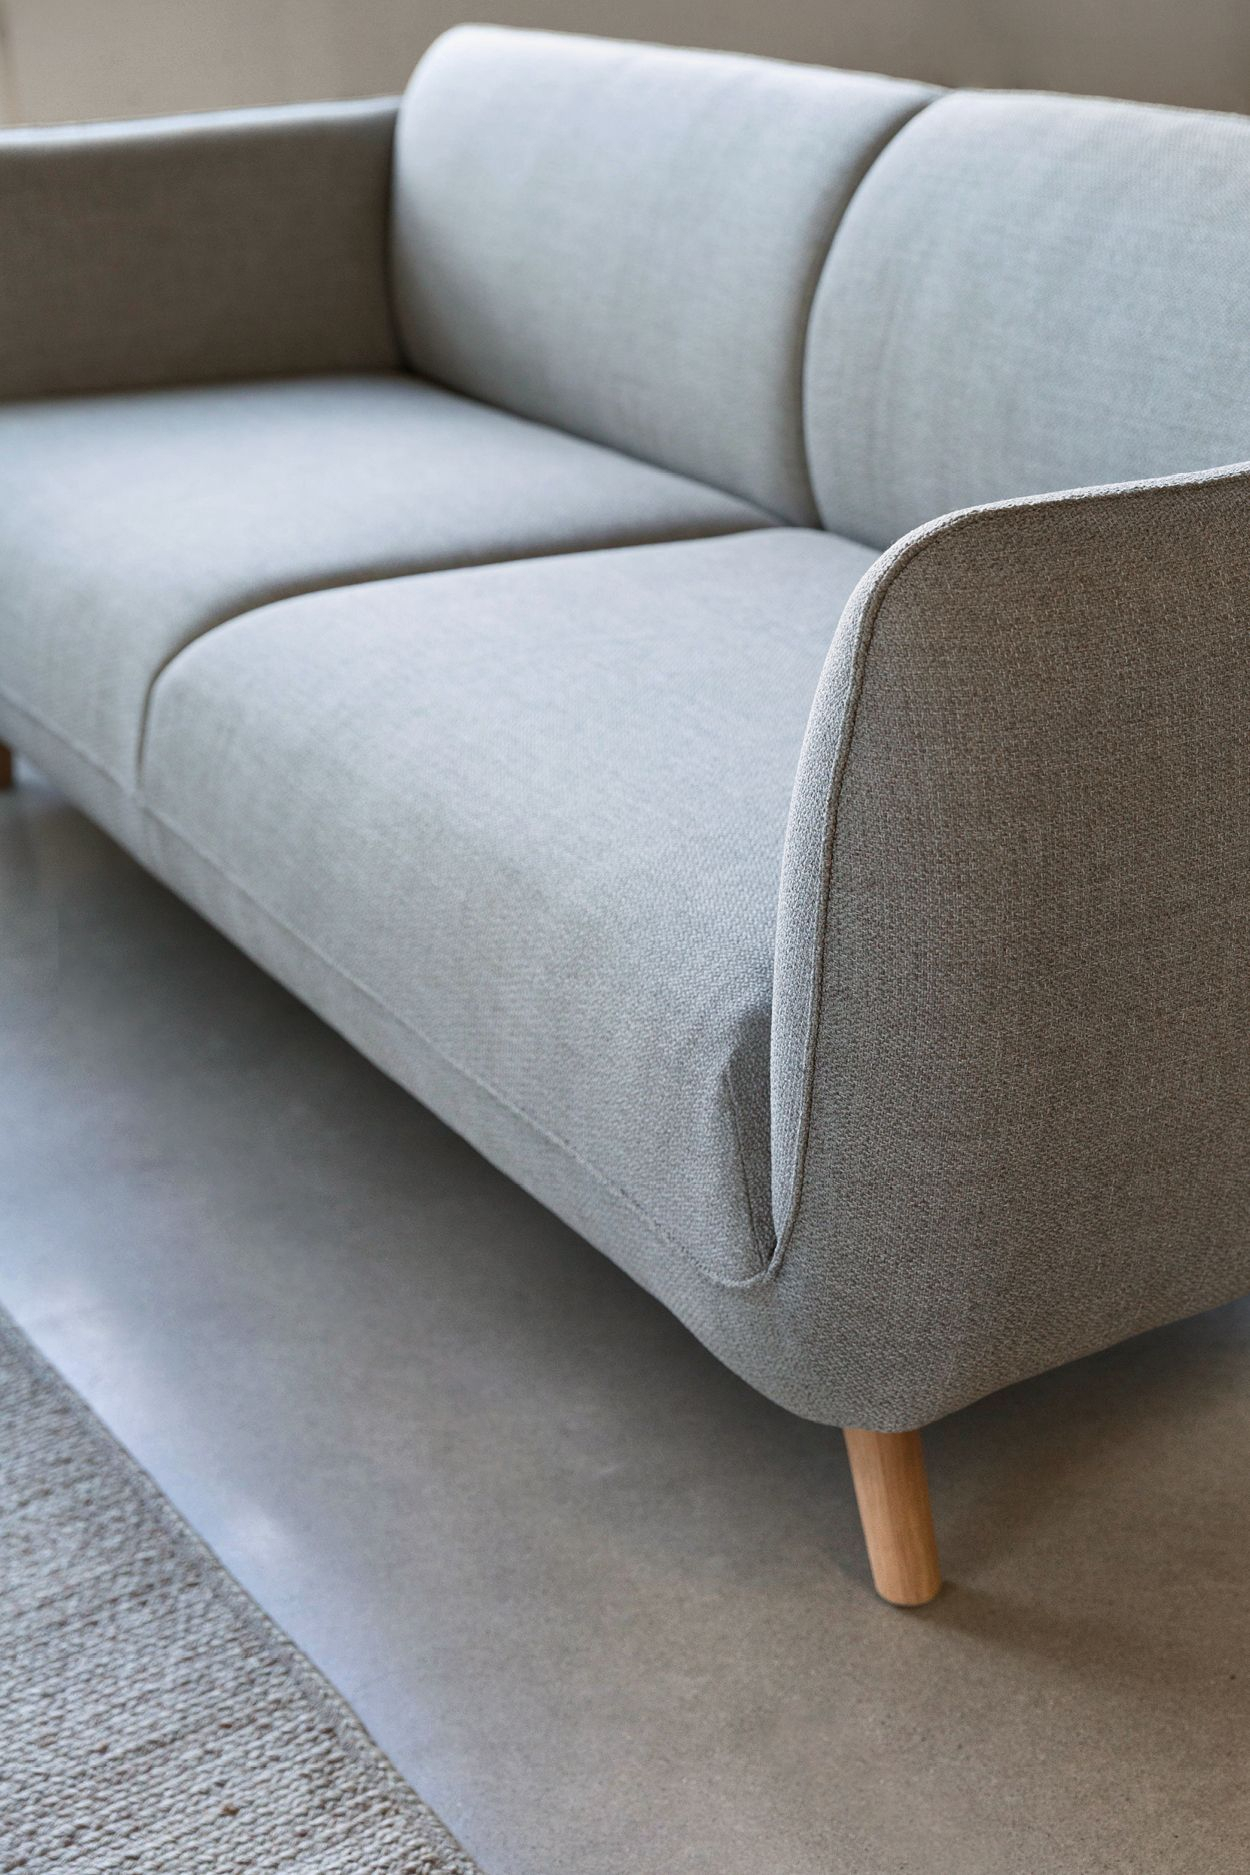 Gray Fabric Sofa, 3 Seat, Solid Wood Legs | Article Haro Modern Throughout Grace Sofa Chairs (View 20 of 25)